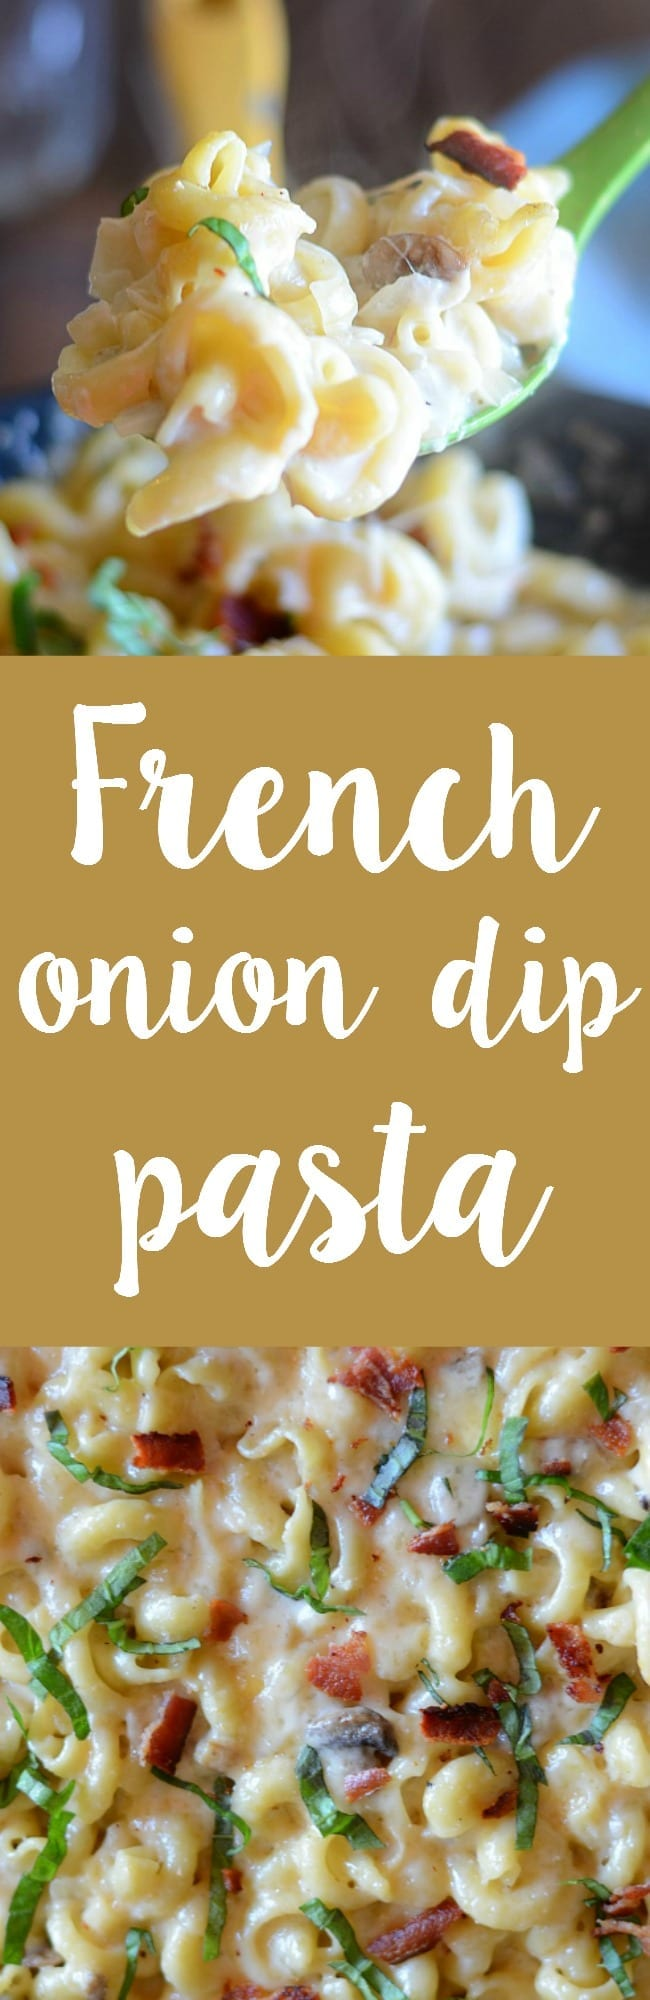 ONE POT French onion dip pasta! Make this super easy weeknight pasta in 30 minutes! It's full of onions and BACON!